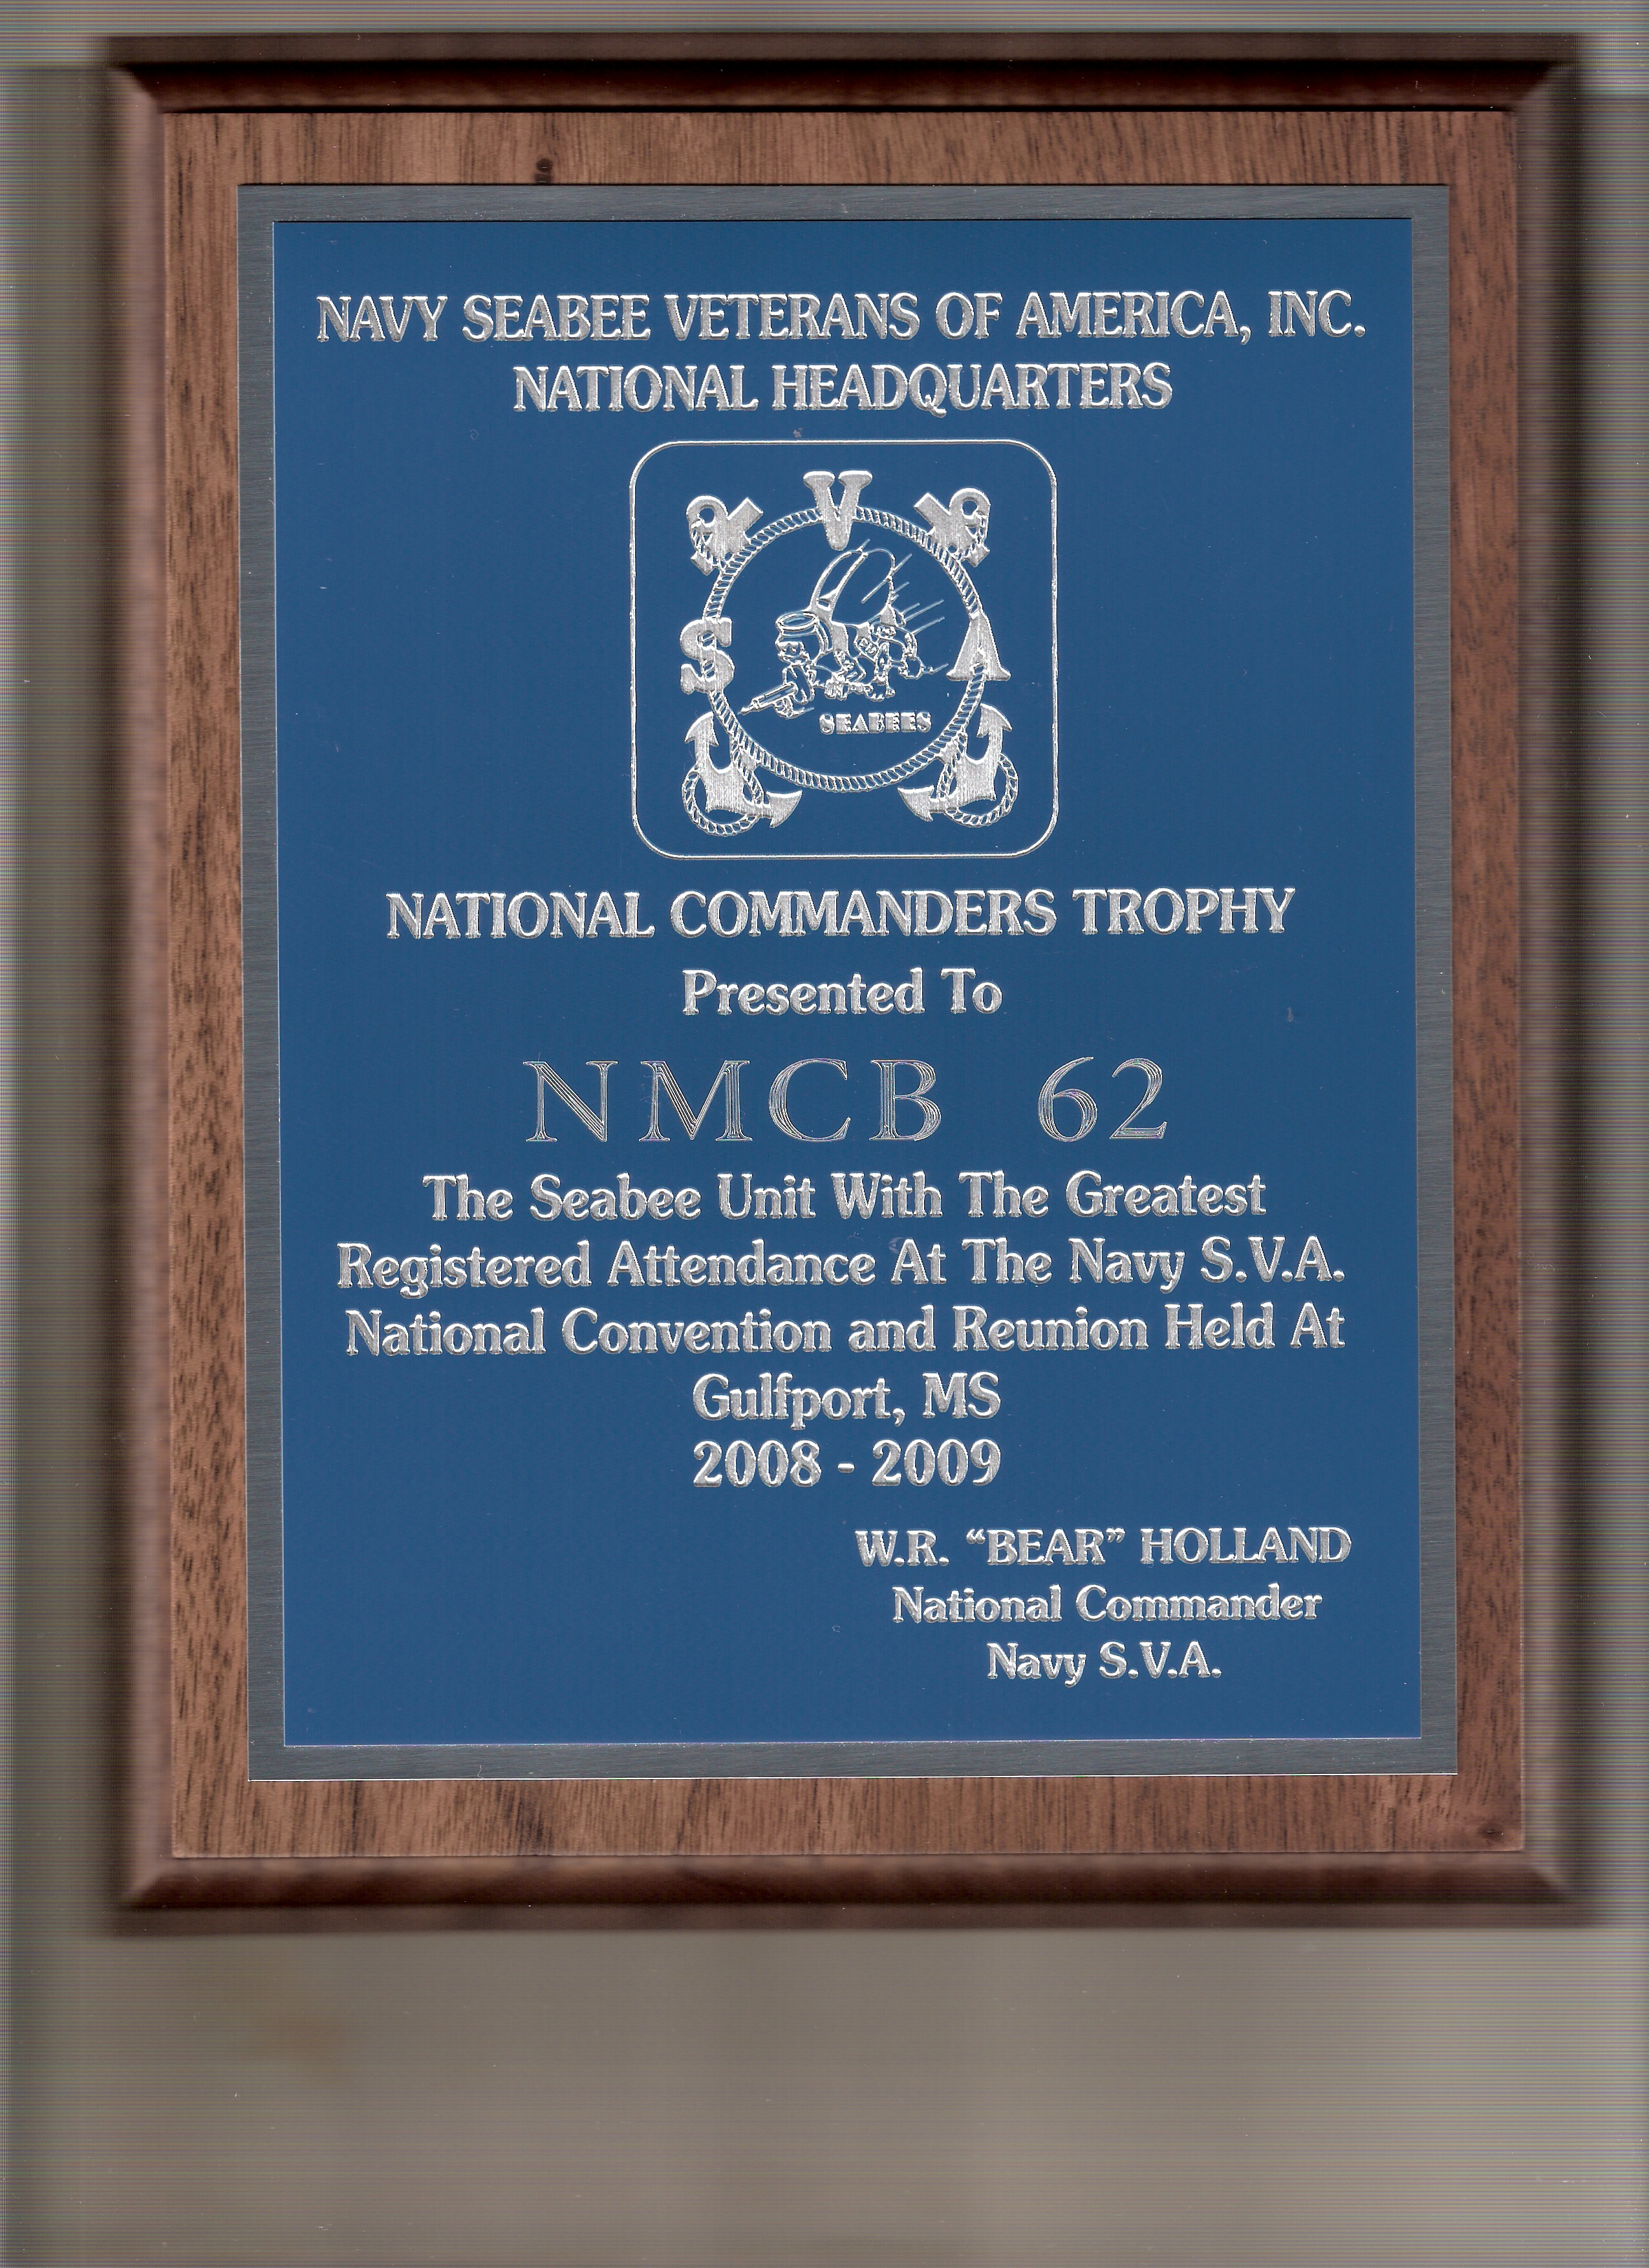 National Commander's Trophy for the NMCB 62